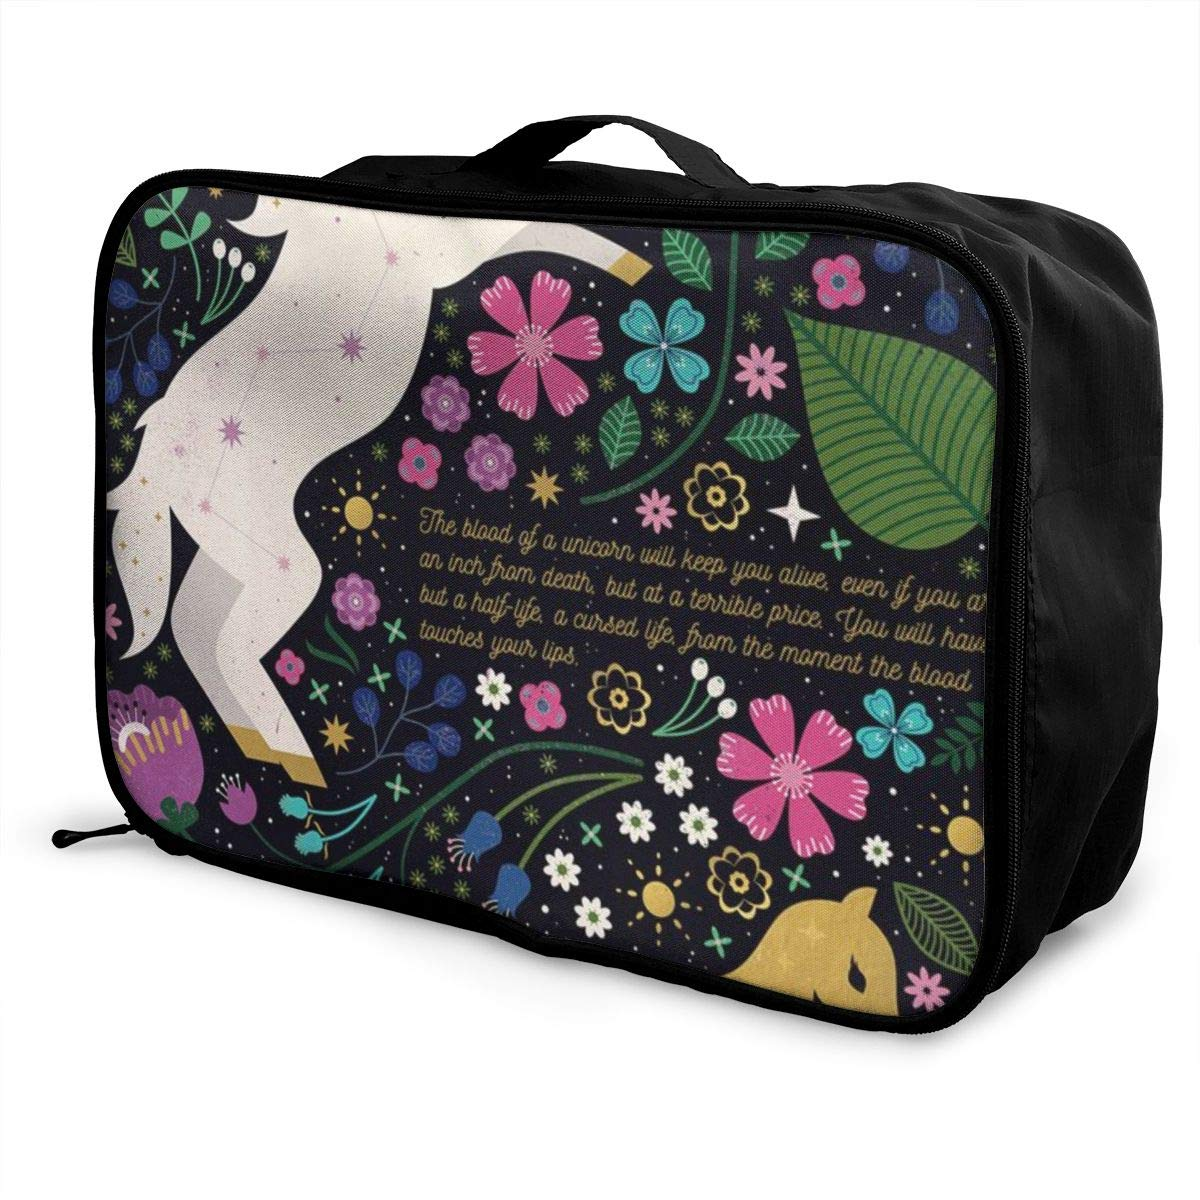 Cartoon Unicorn And Flowers Travel Lightweight Waterproof Folding Storage Portable Luggage Duffle Tote Bag Large Capacity In Trolley Handle Bags 6x11x15 Inch